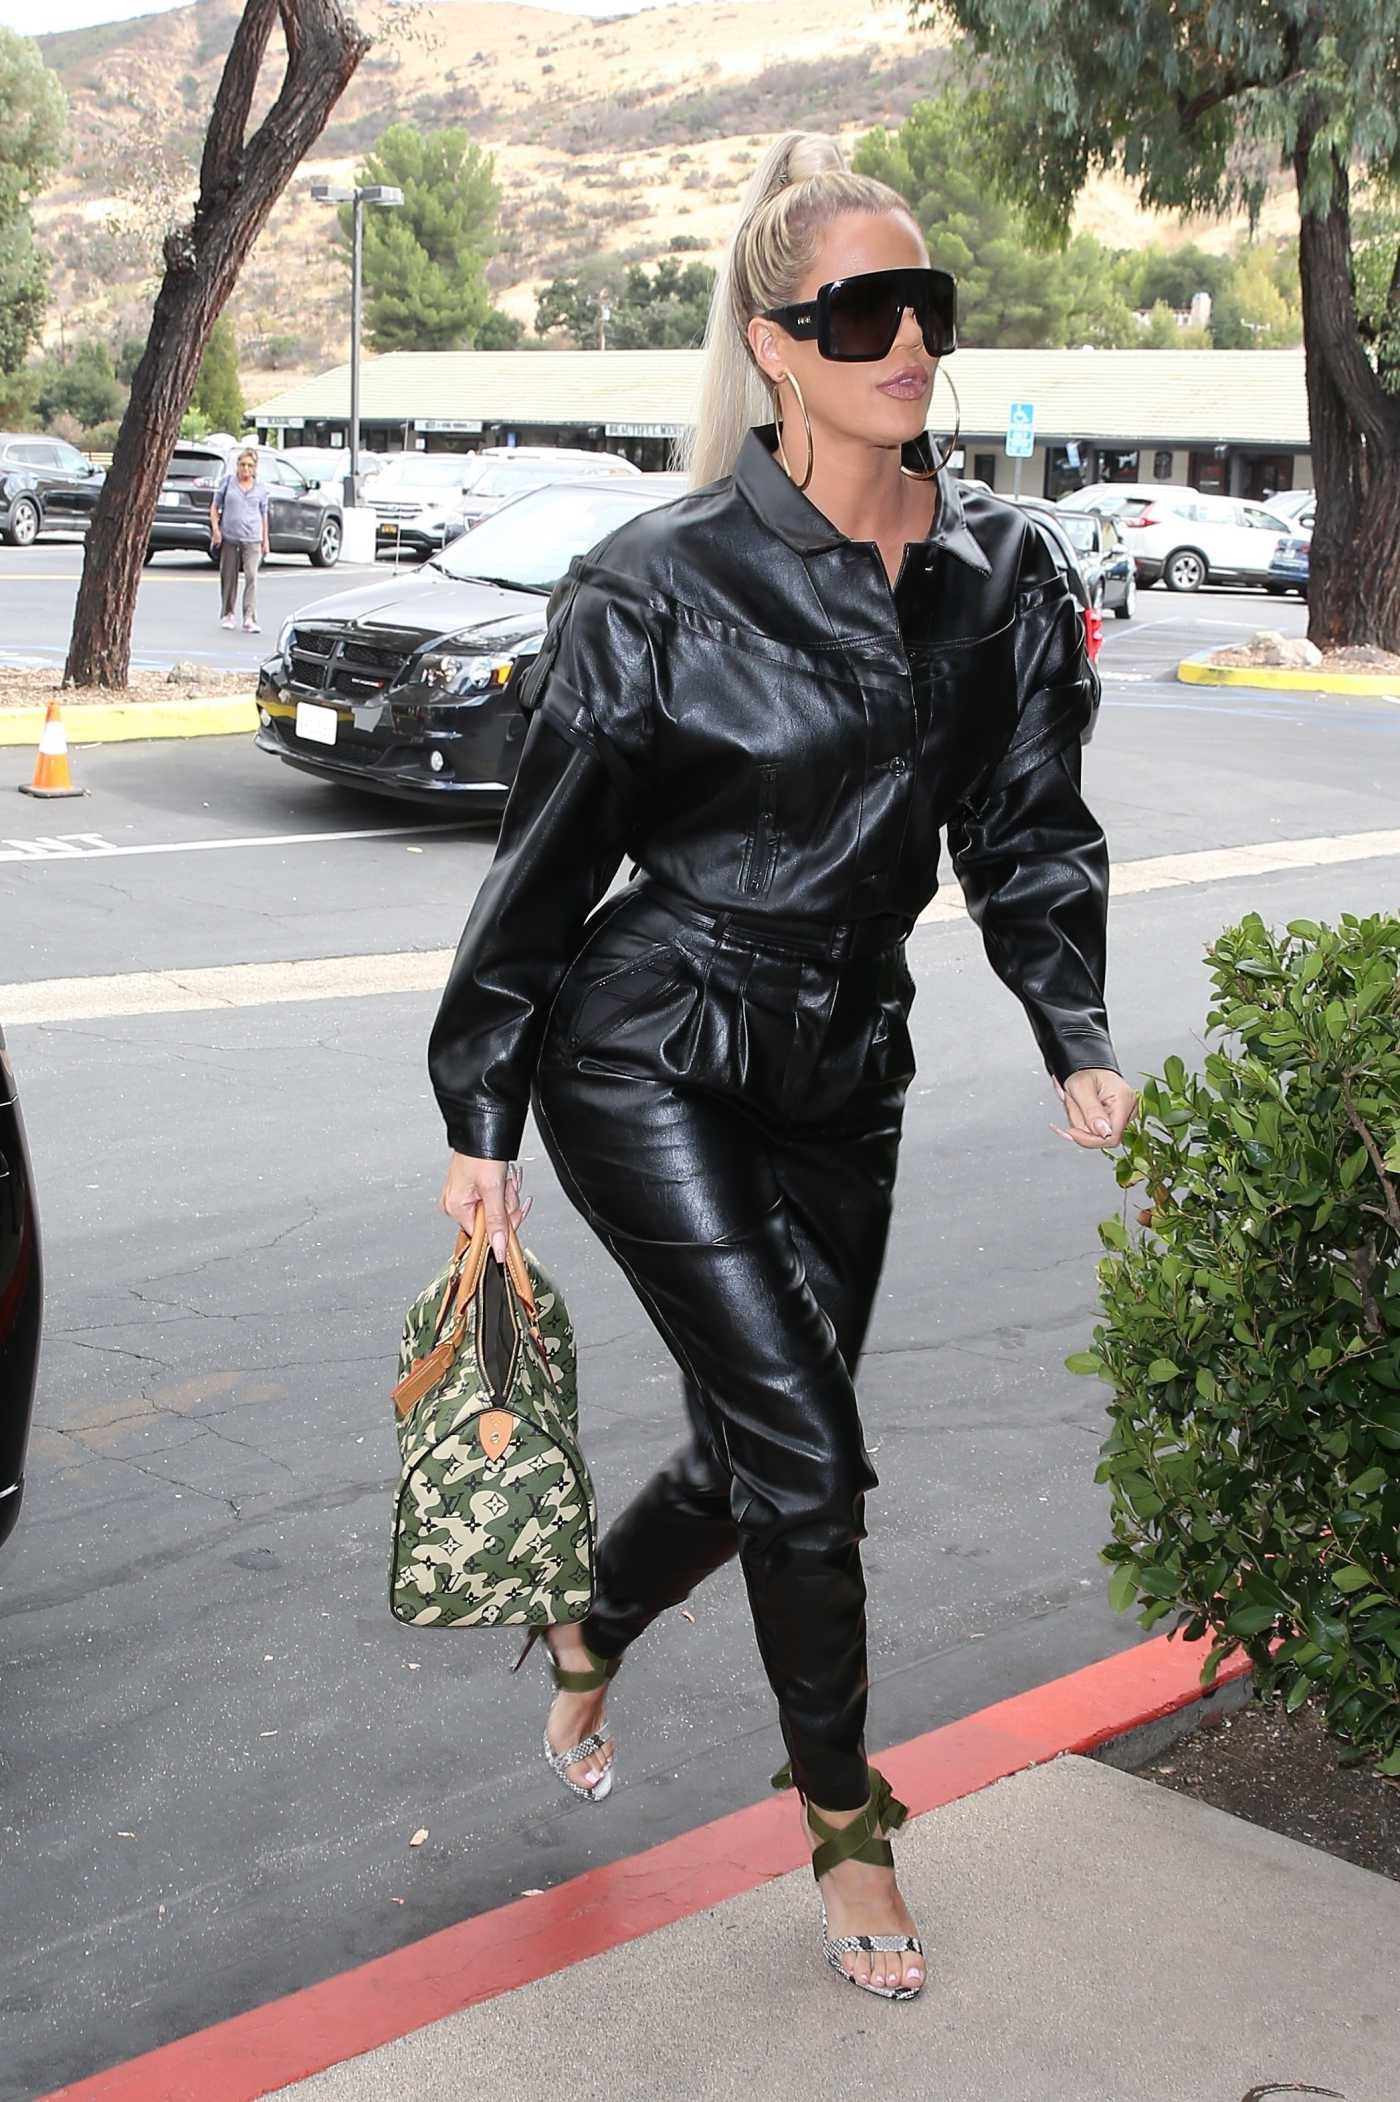 Khloe Kardashian in a Black Leather Jumpsuit Was Seen Out in Agoura Hills 09/10/2019